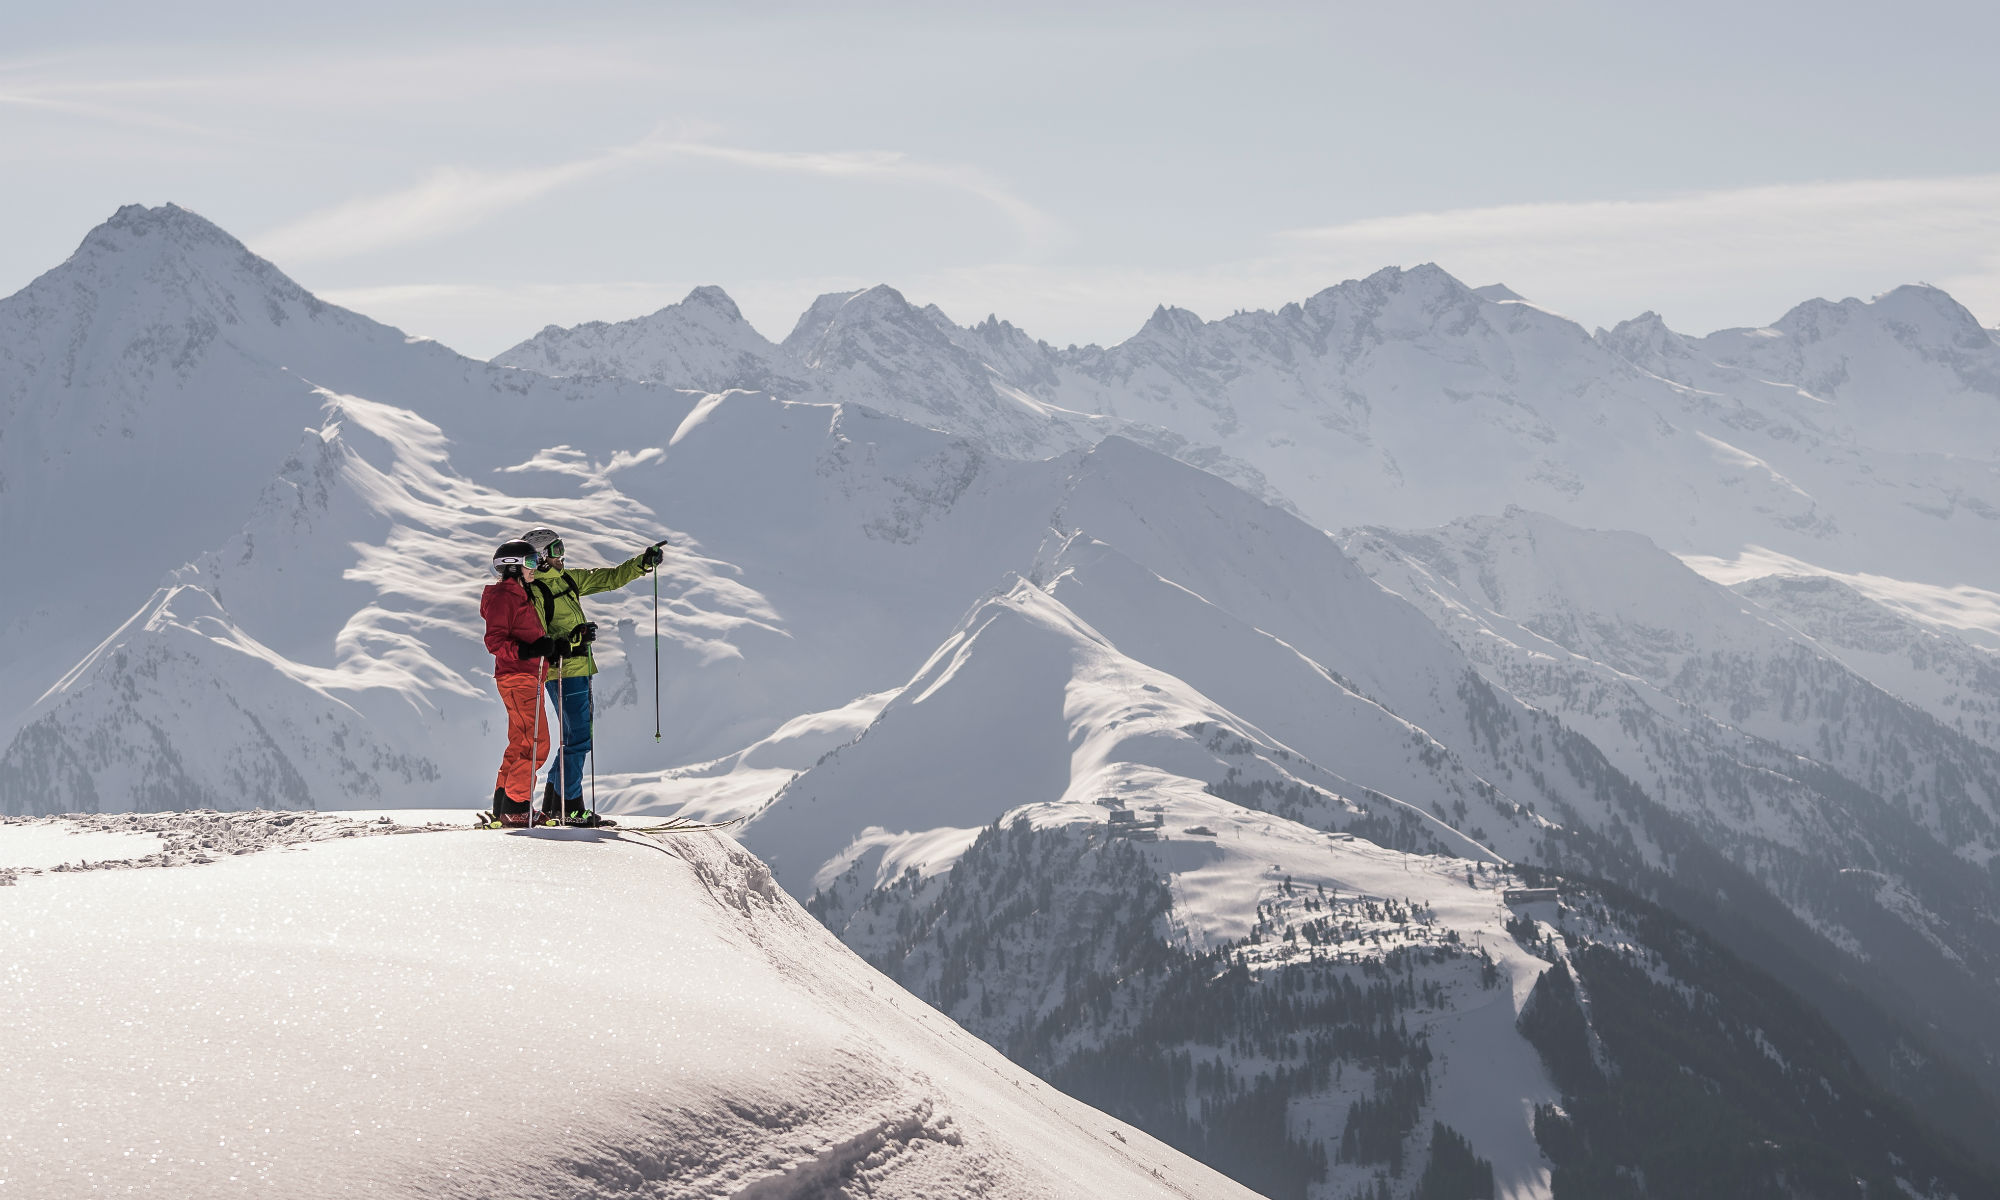 Two freeride skiers enjoying the view of the surrounding mountainous landscape in the Zillertal valley.